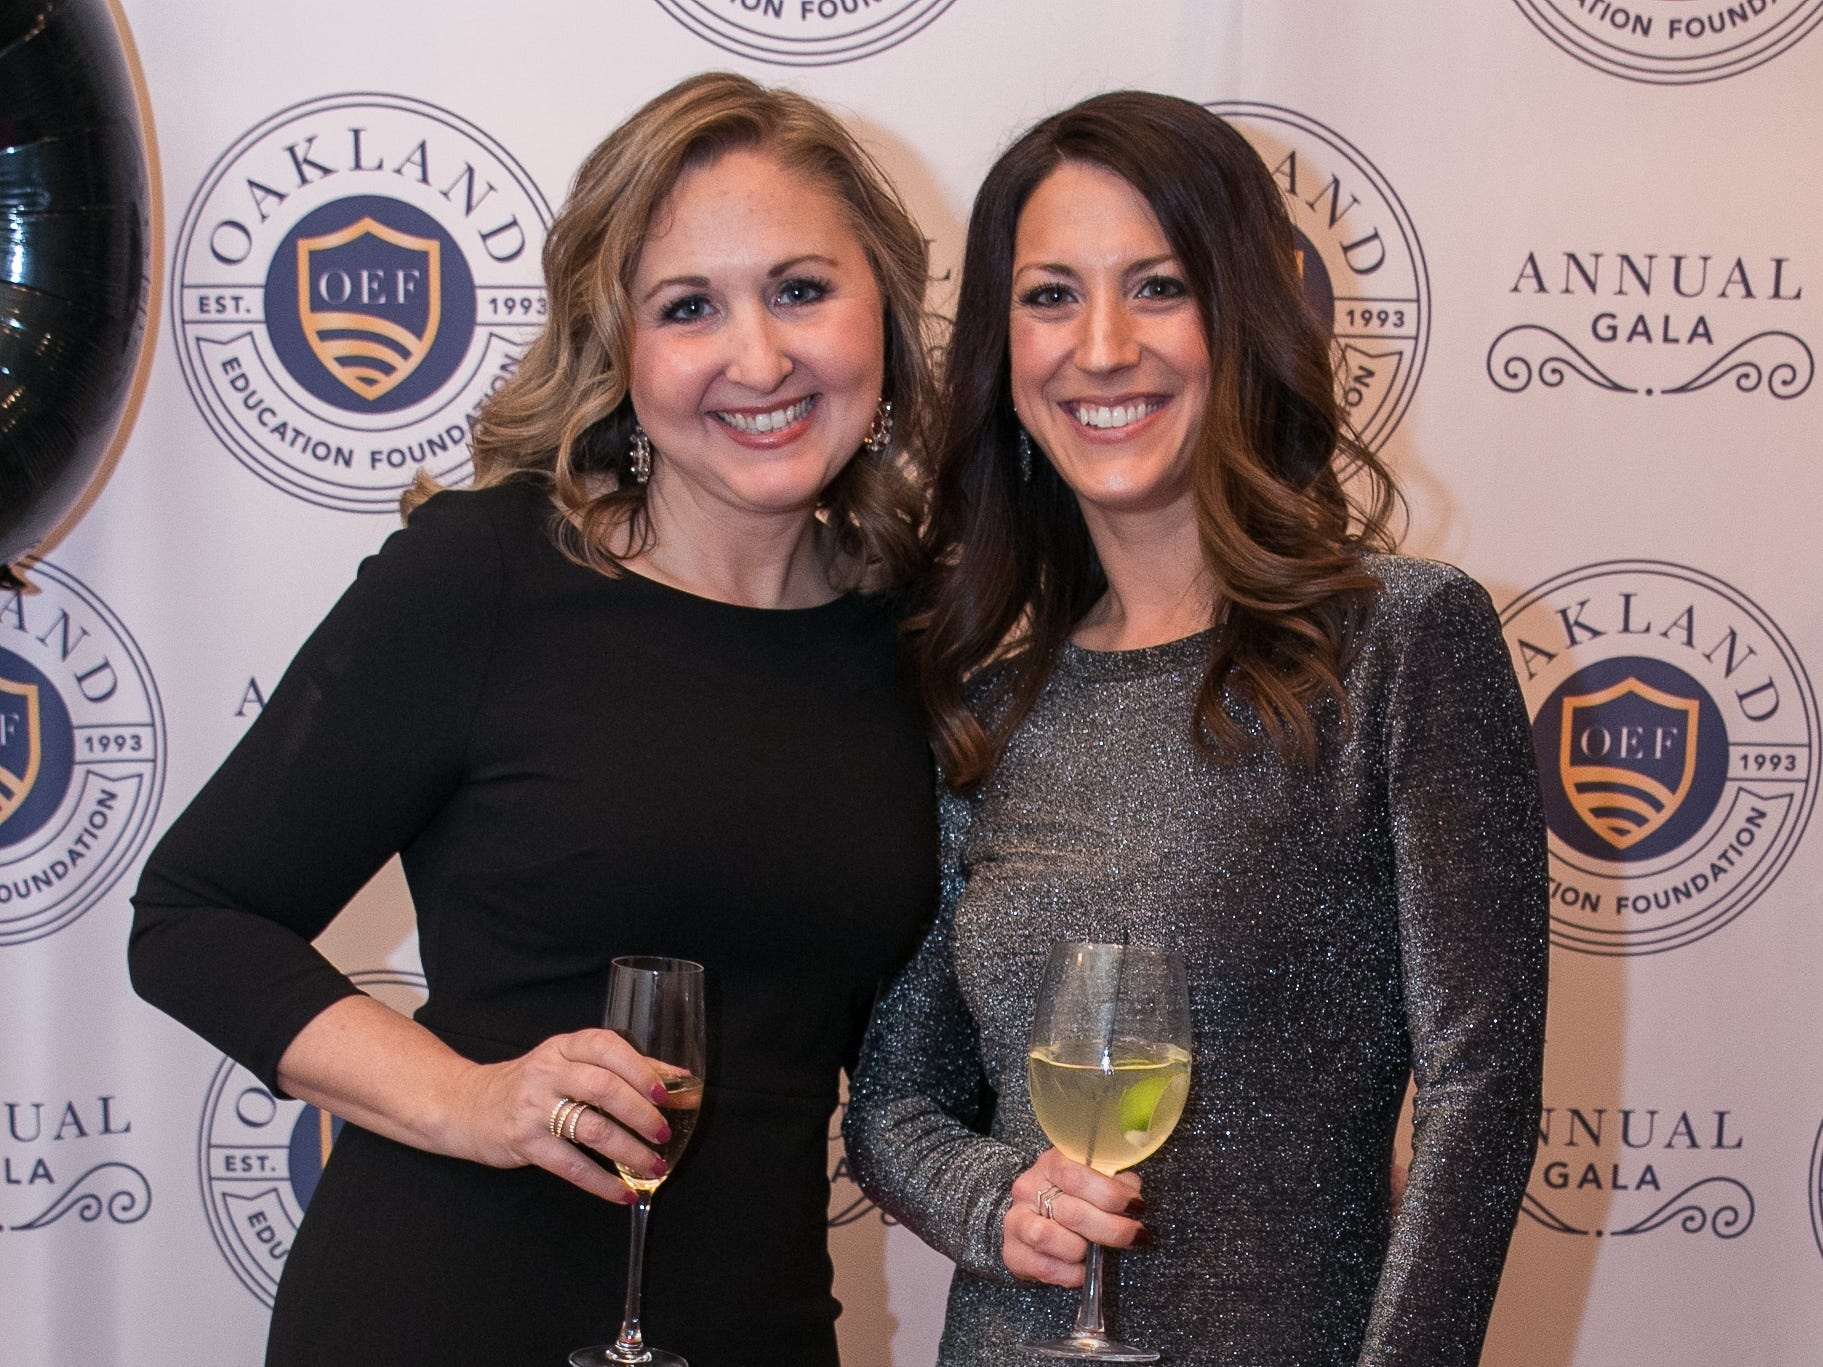 Alyson Dietrich, Lori Piccione. The Oakland Education Foundation held their 25th Anniversary Casino Night Gala at Preakness Hills Country Club in Wayne. 03/16/2019